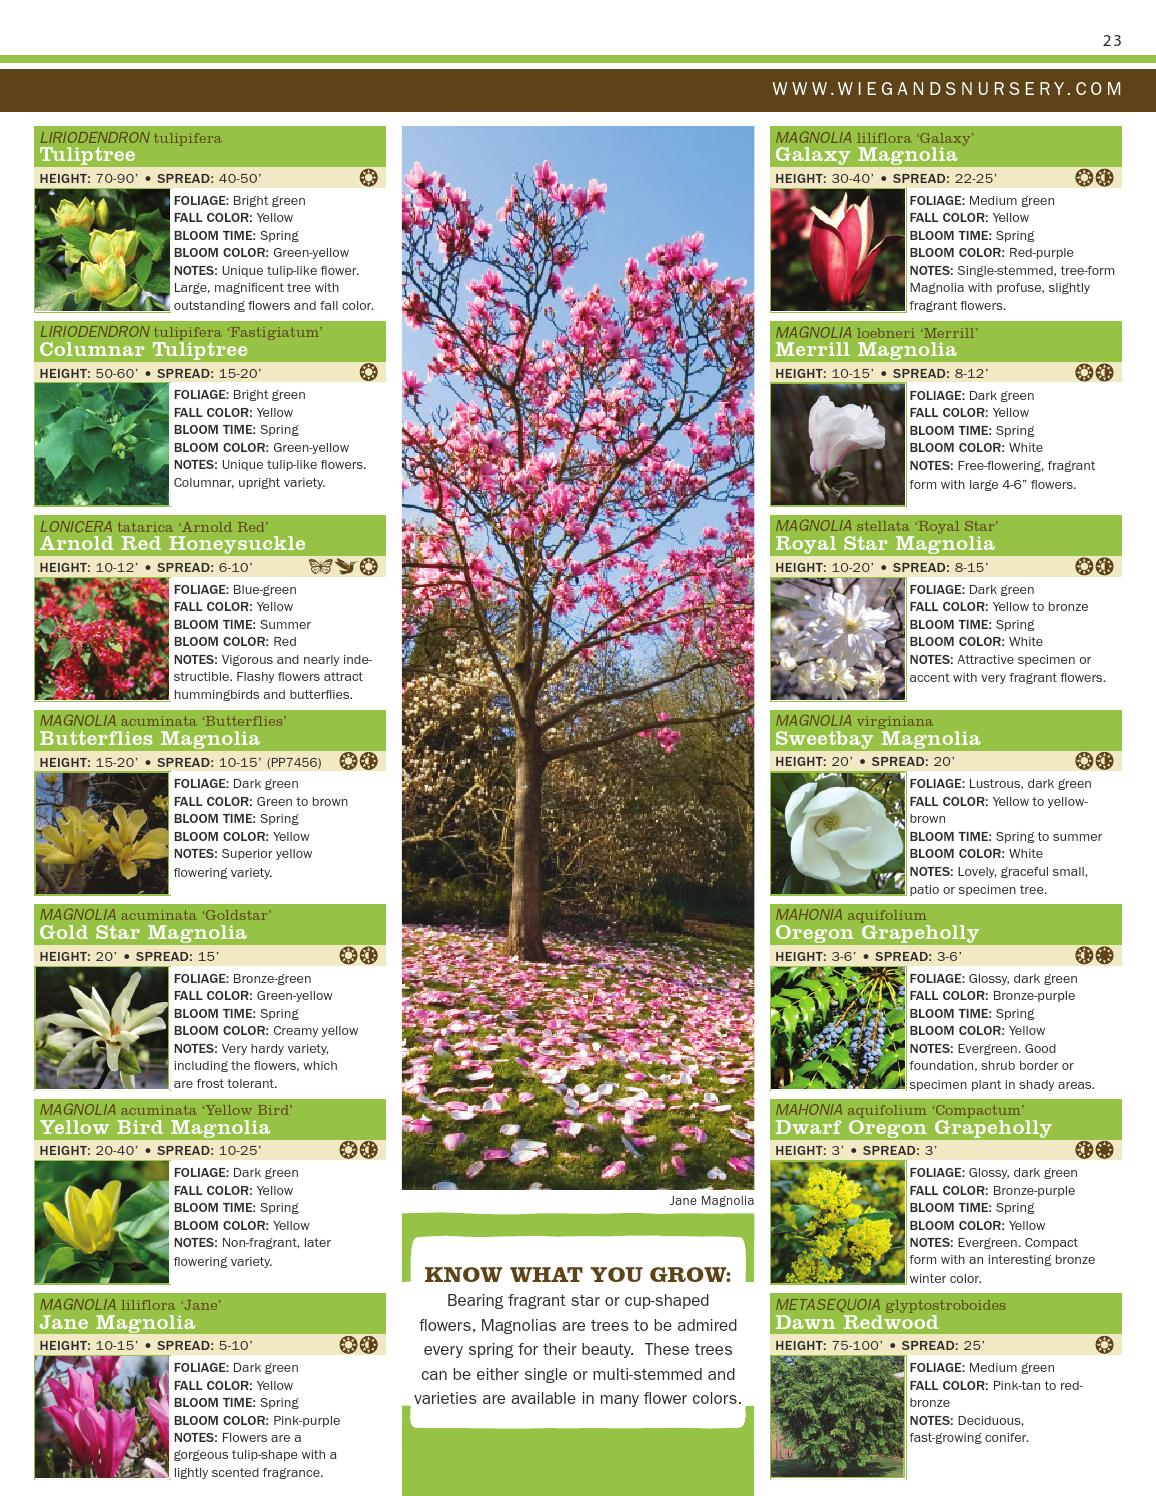 Plant Catalog By Ray Wiegands Nursery Issuu